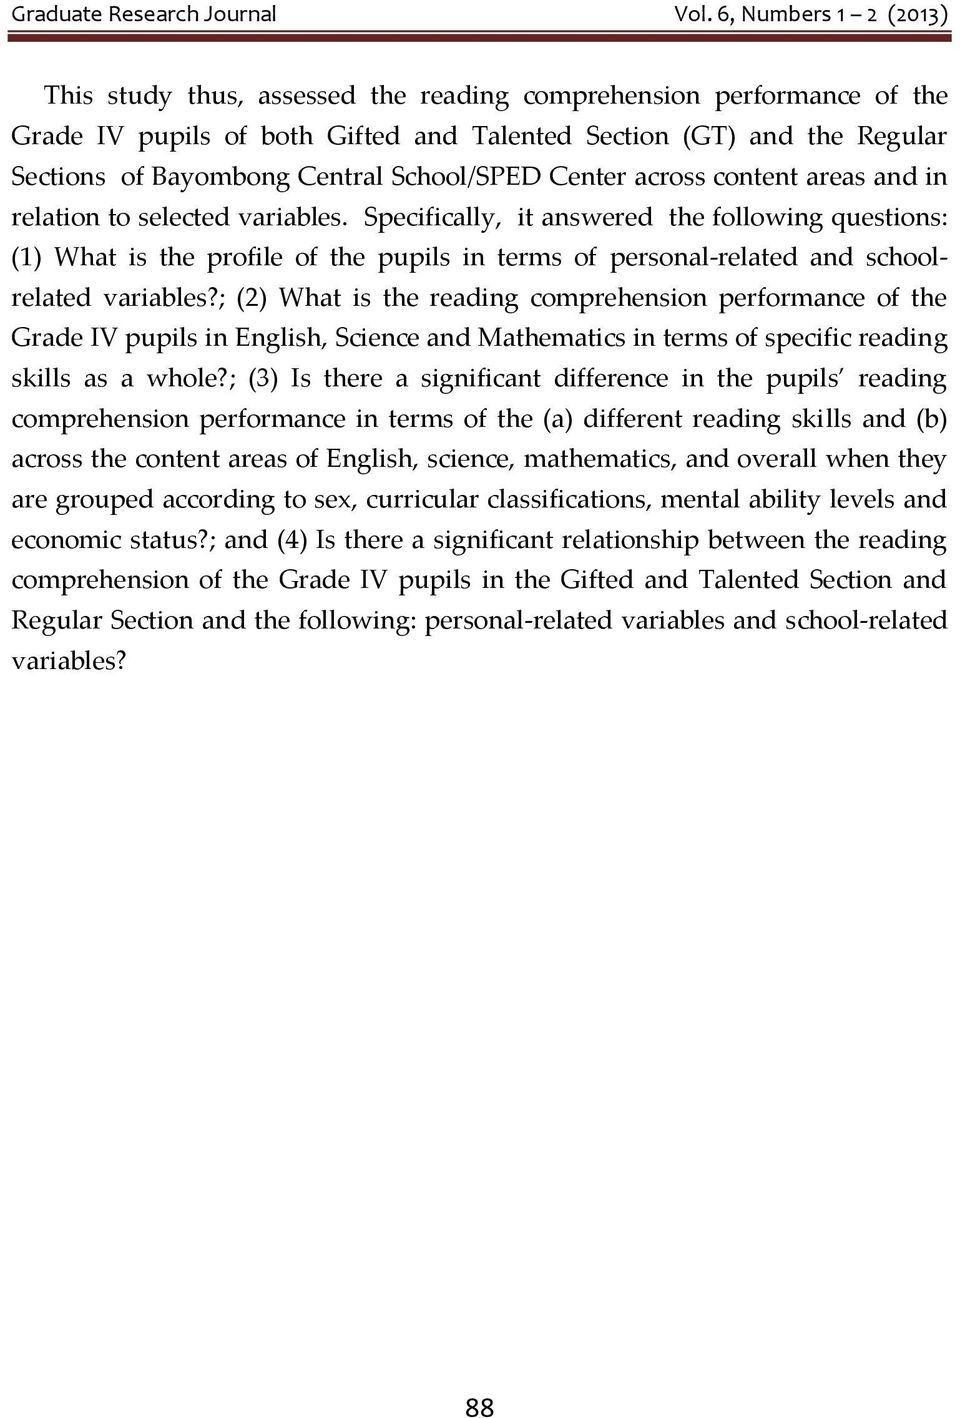 Phd thesis on reading comprehension